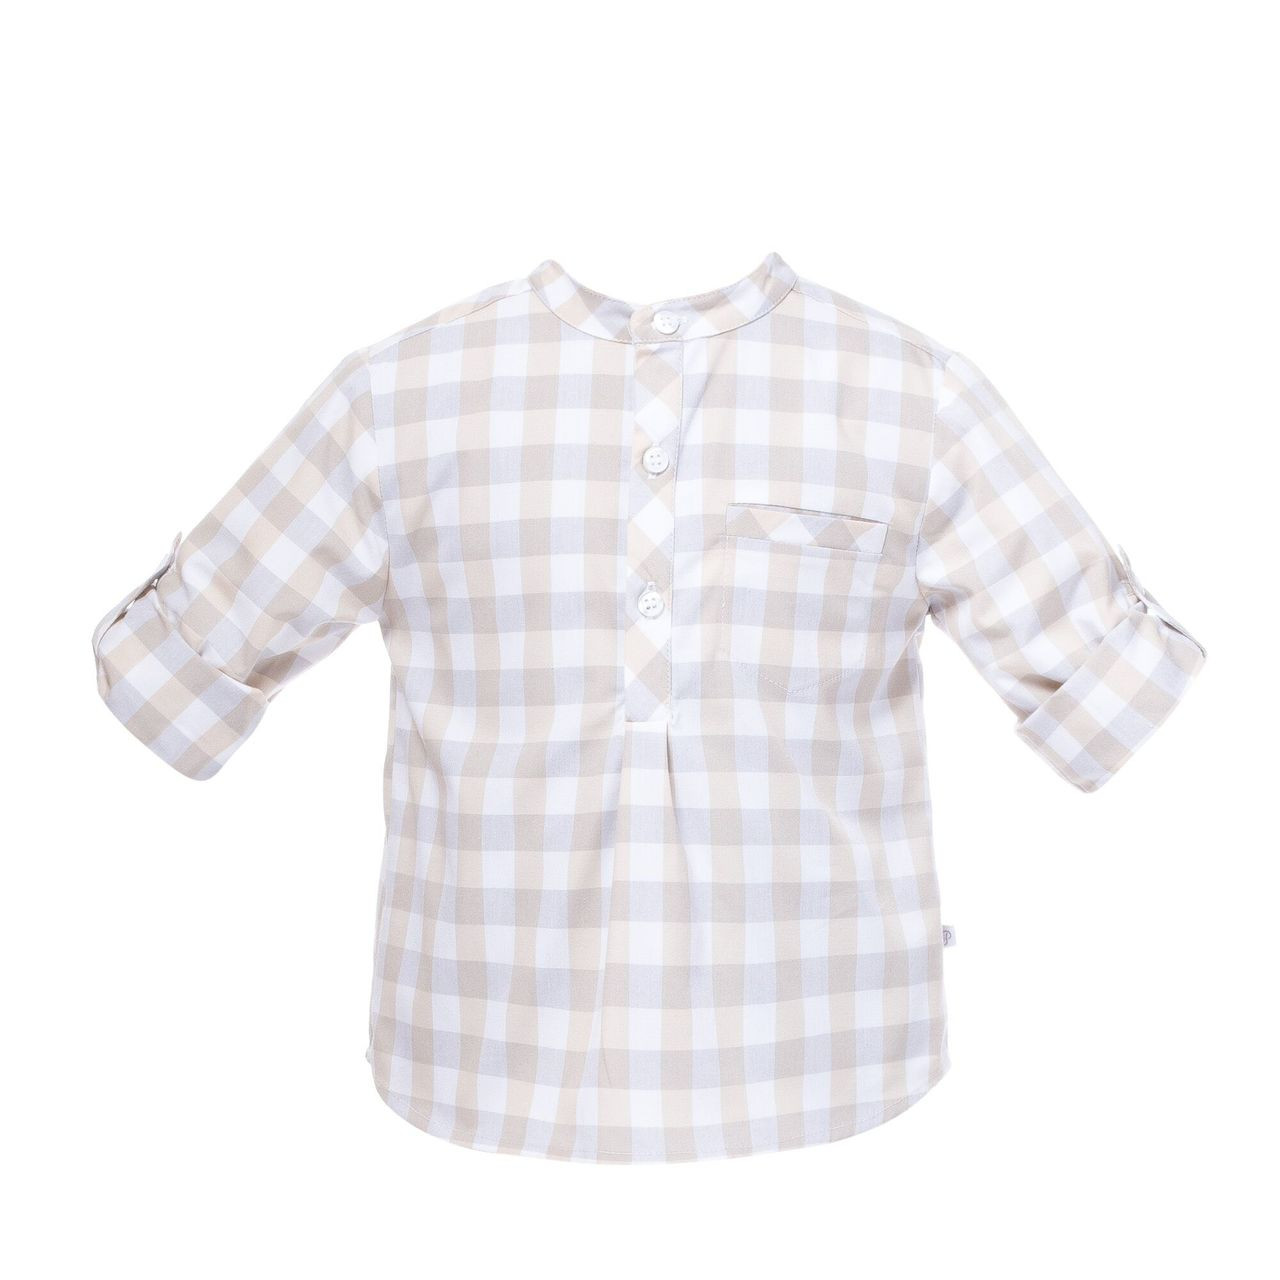 Outlet How Much Outlet Best Sale SHIRTS - Shirts Patachou 5CxS58bwu